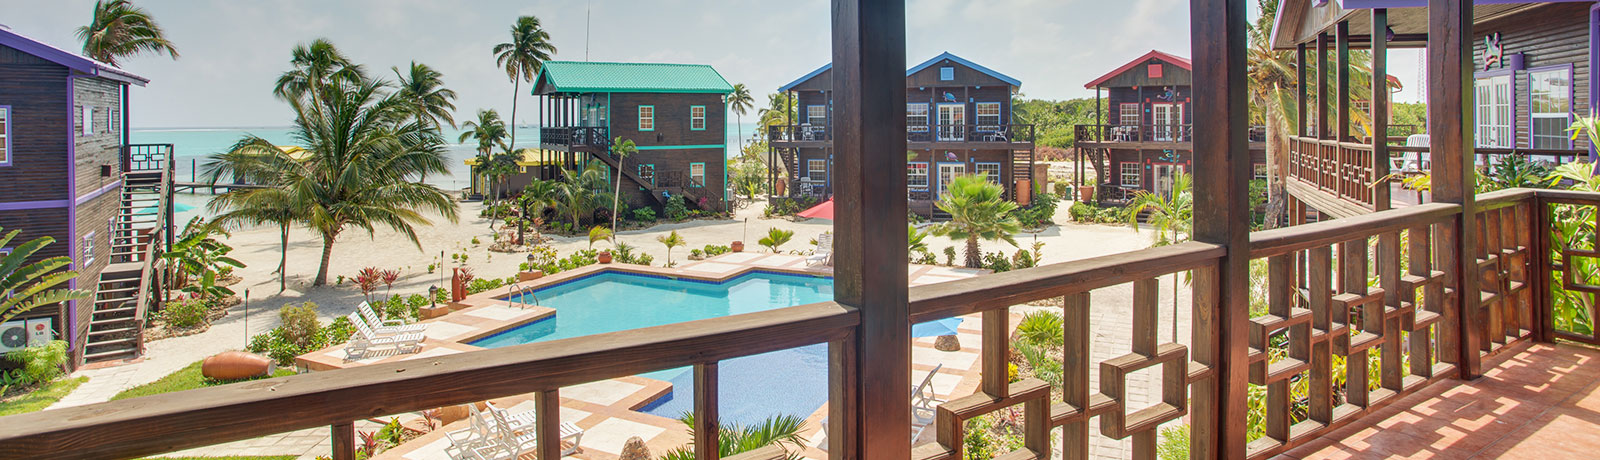 Beachfront Belize Vacation Resort X'tan Ha